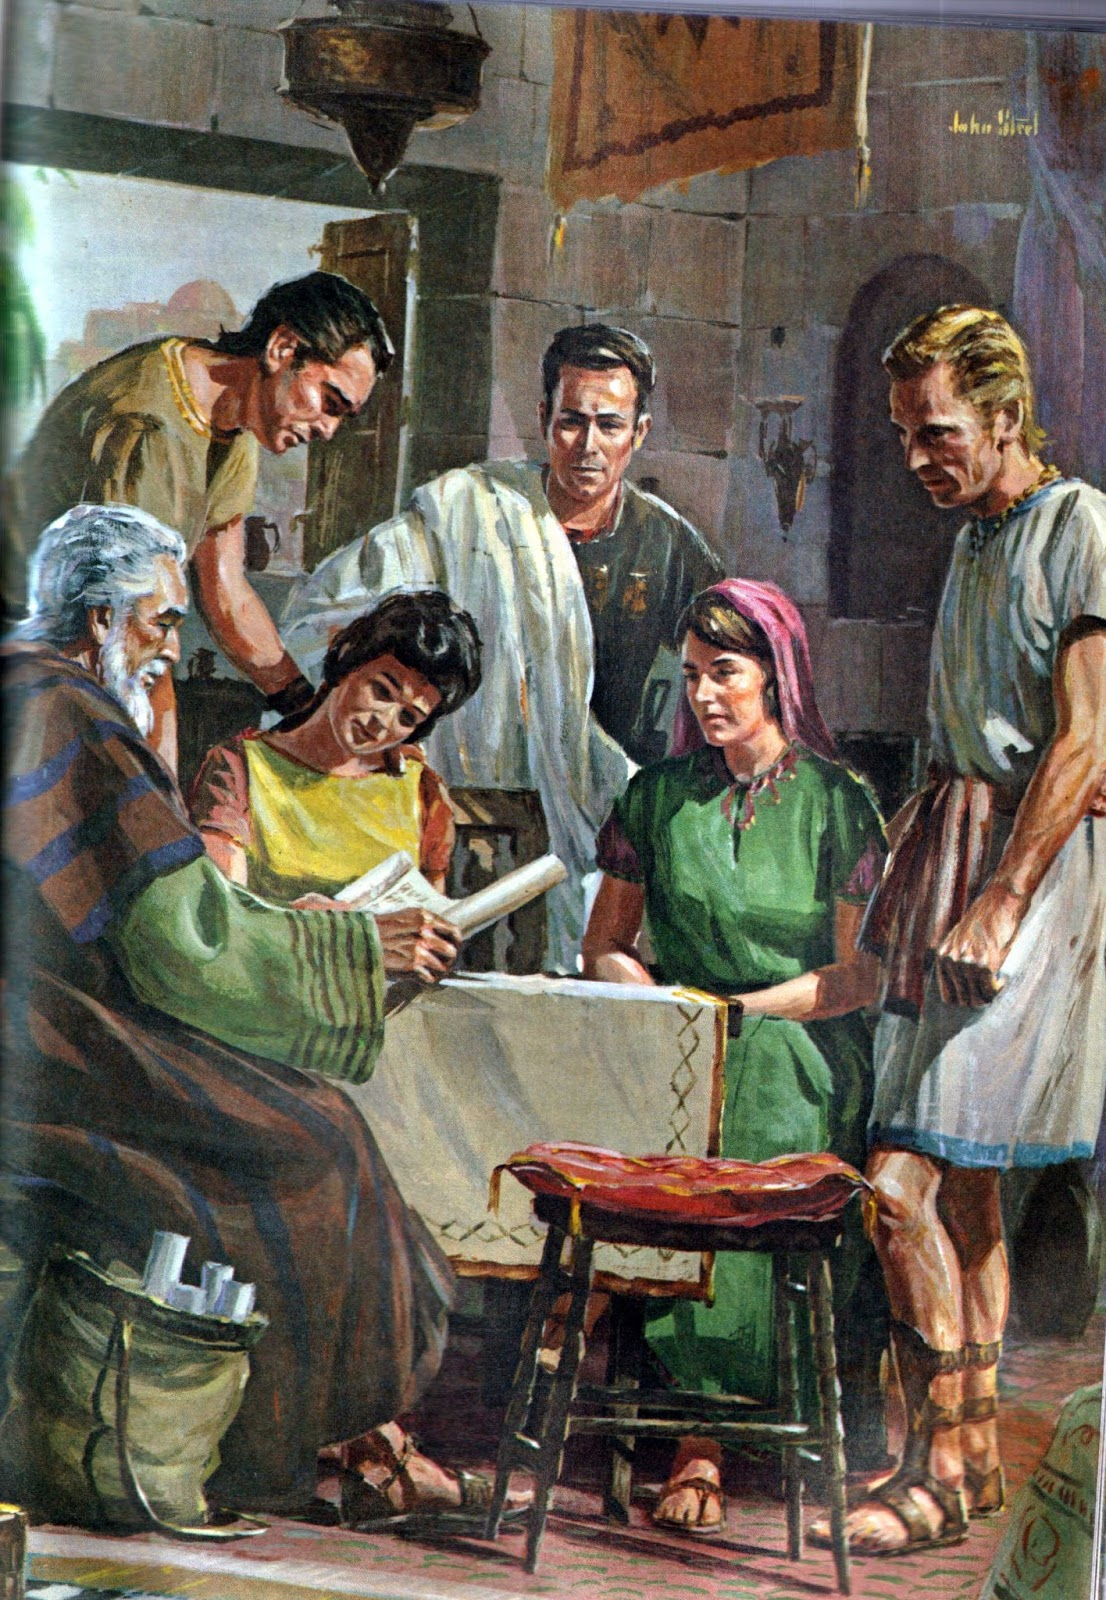 he Bible also encourages us to have a Berean spirit (Acts 17:11)<br>The early church decided from the earliest of times that Paul's teaching in his epistles was not only sound but had apostolic authority and the scriptural quality to be added to the Scriptures.